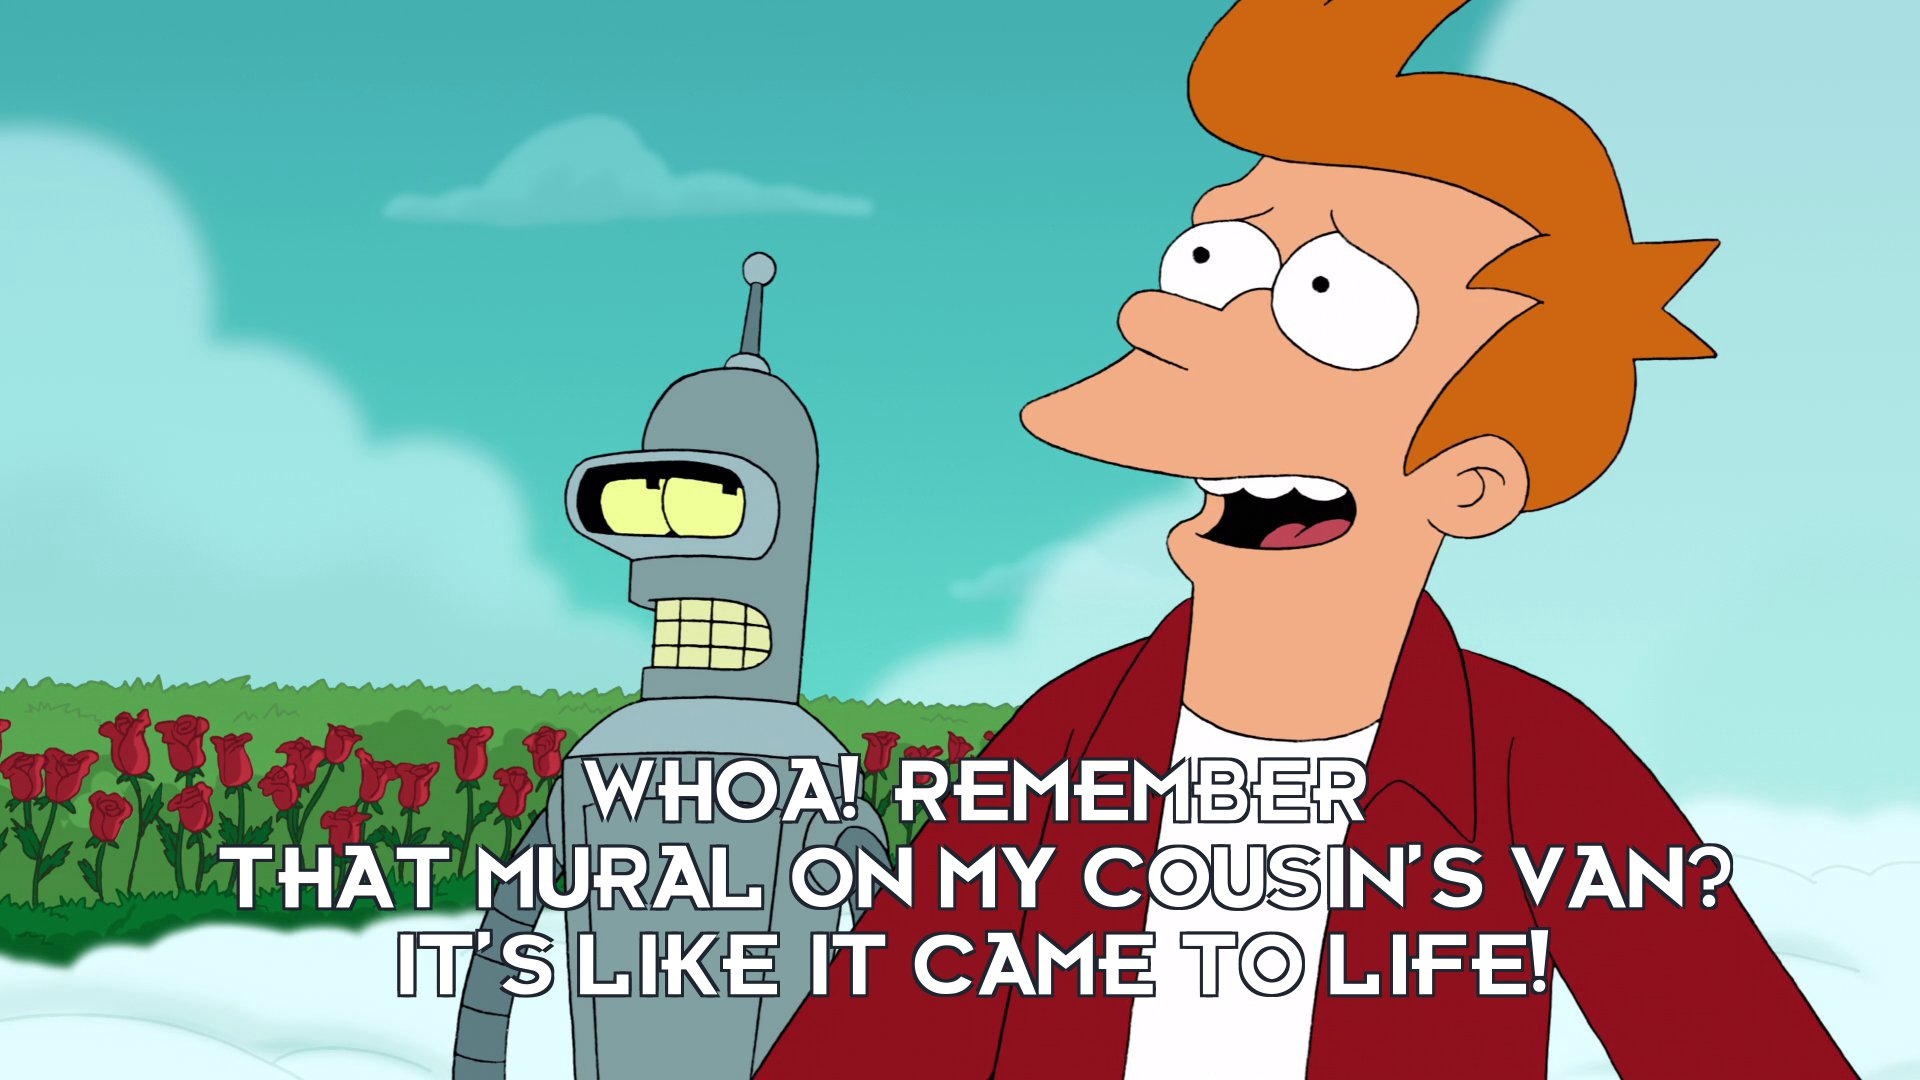 Philip J Fry: Whoa! Remember that mural on my cousin's van? It's like it came to life!